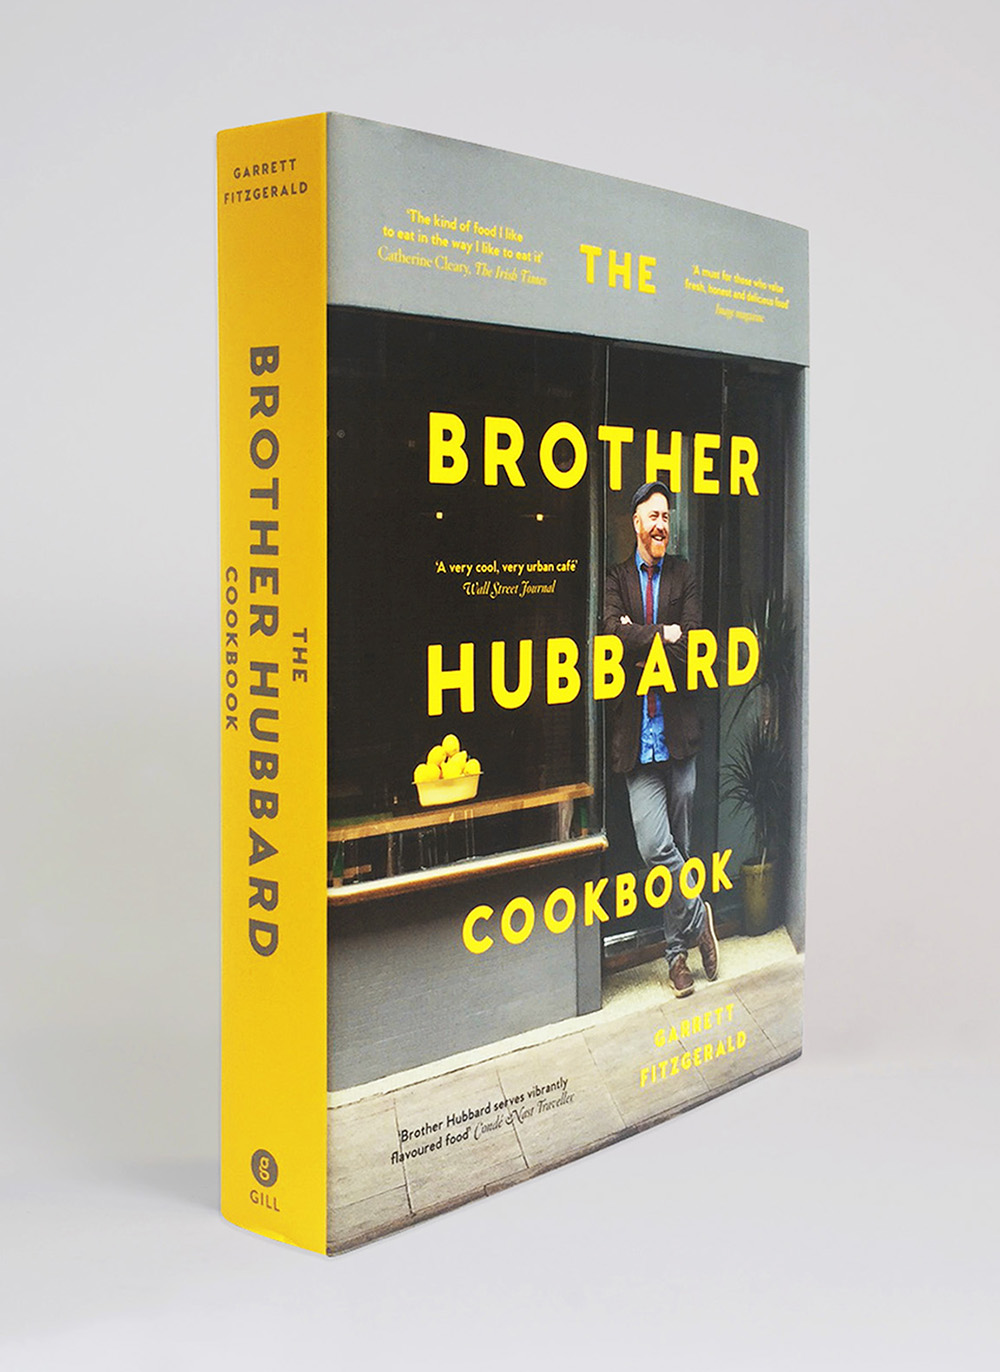 Brother Hubbard book spine